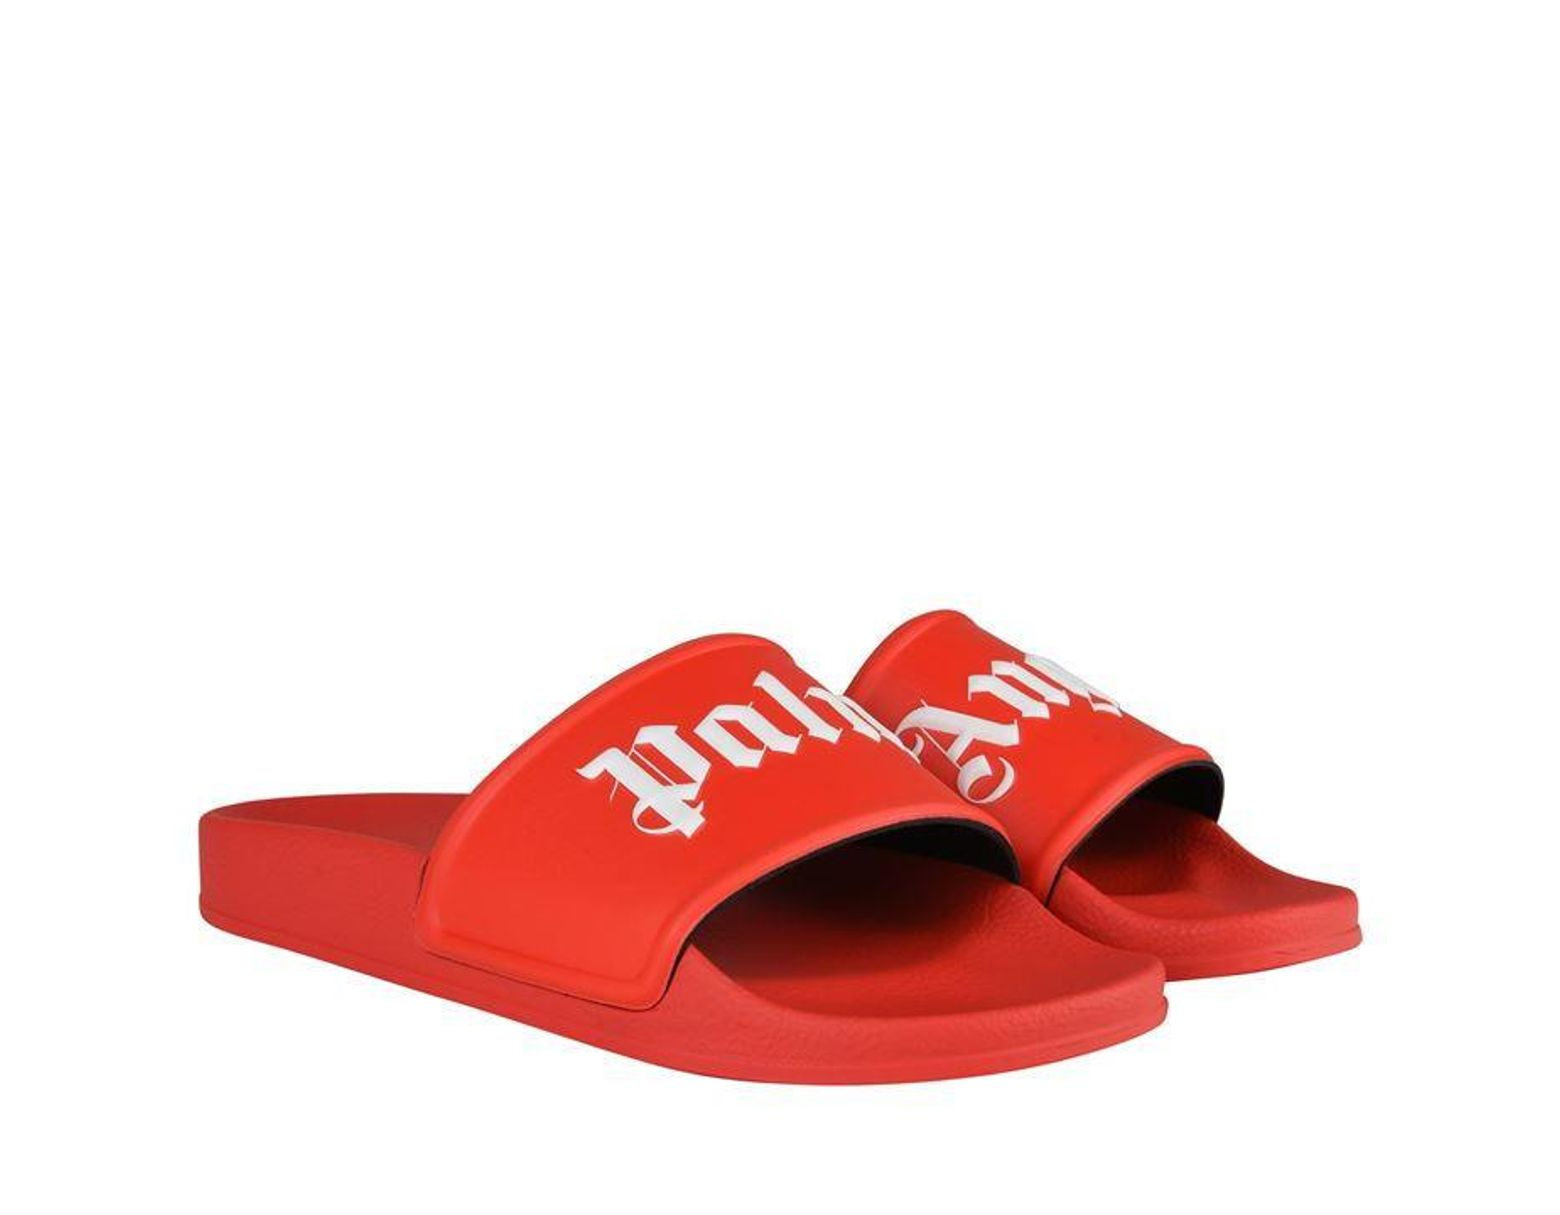 d0207caf3965c Palm Angels Logo Pool Sliders in Red for Men - Save 67% - Lyst